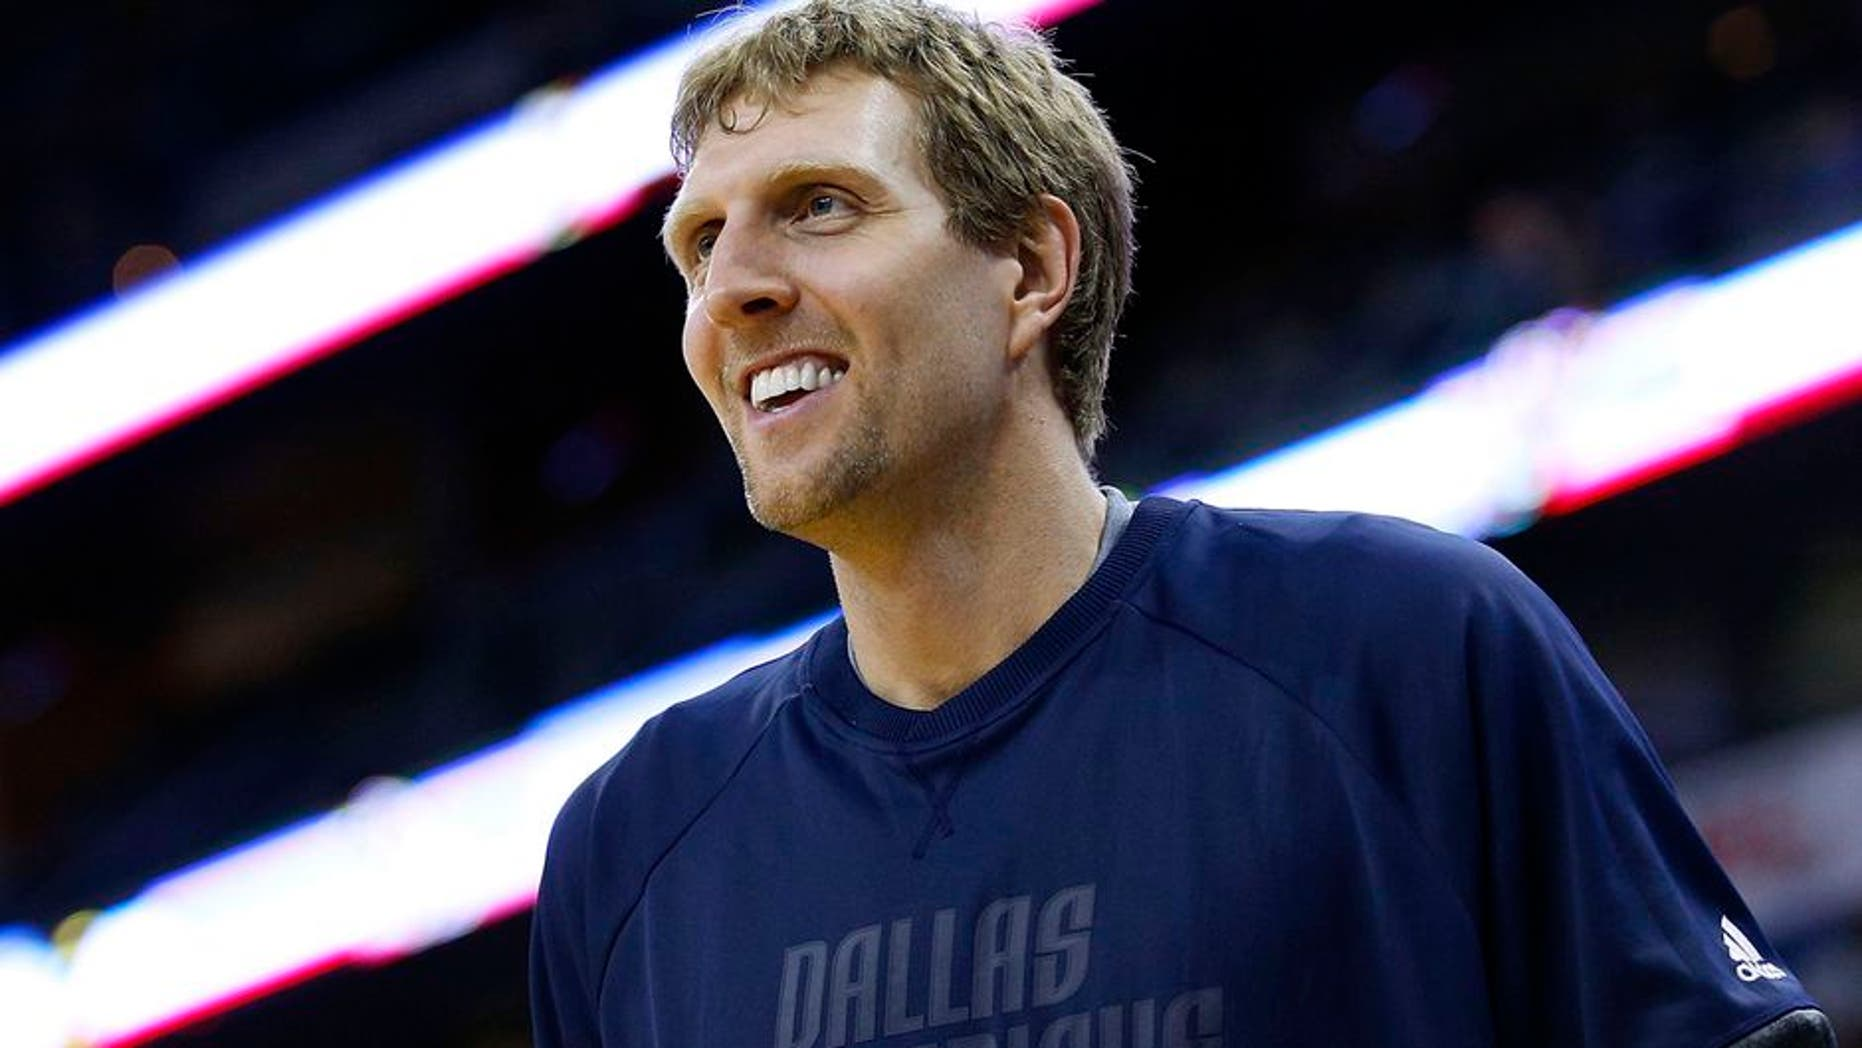 NEW ORLEANS, LA - MARCH 29: Dirk Nowitzki #41 of the Dallas Mavericks reacts during a game against the New Orleans Pelicans at the Smoothie King Center on March 29, 2017 in New Orleans, Louisiana. NOTE TO USER: User expressly acknowledges and agrees that, by downloading and or using this photograph, User is consenting to the terms and conditions of the Getty Images License Agreement. (Photo by Jonathan Bachman/Getty Images)